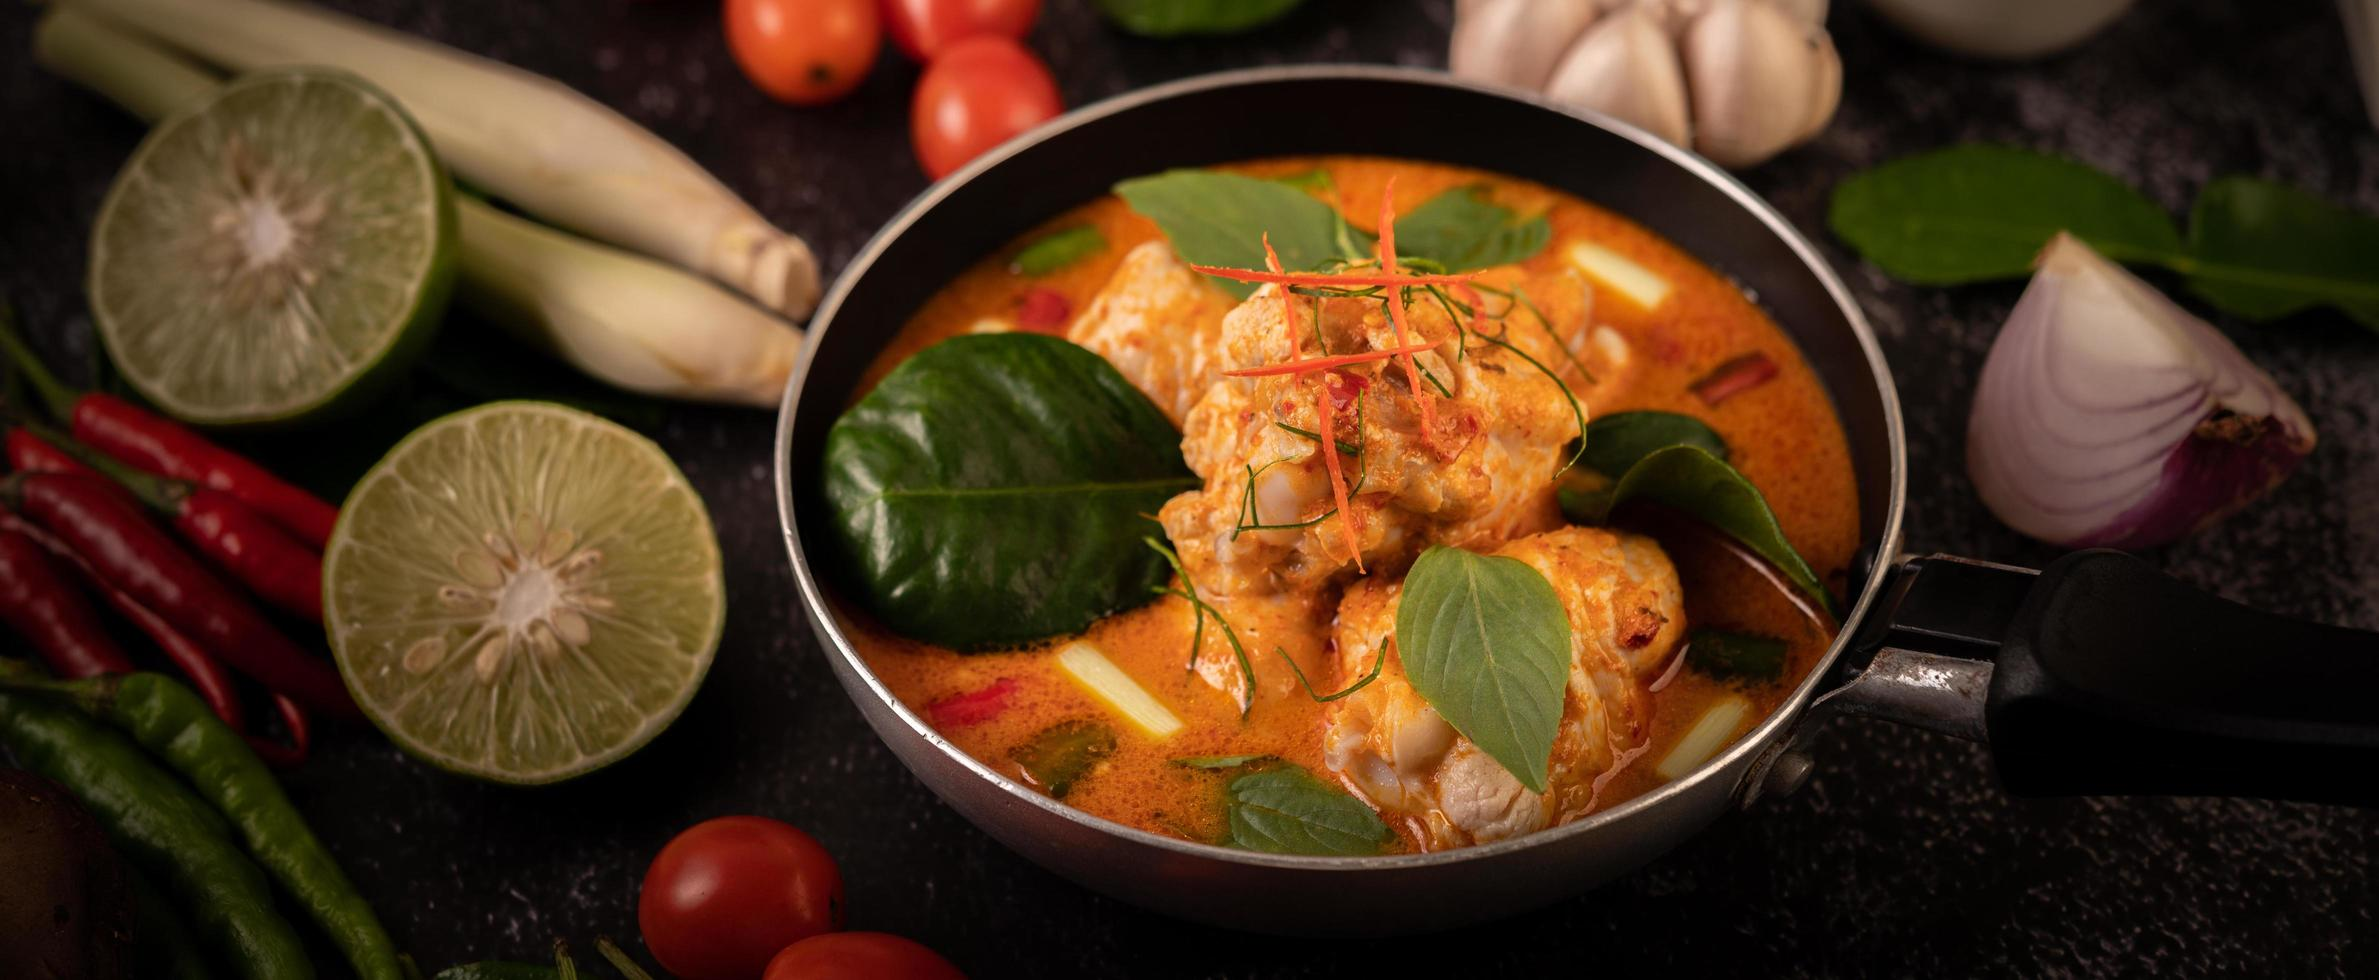 Curry Made With Chicken Chili And Basil And Tomato Stock Photo